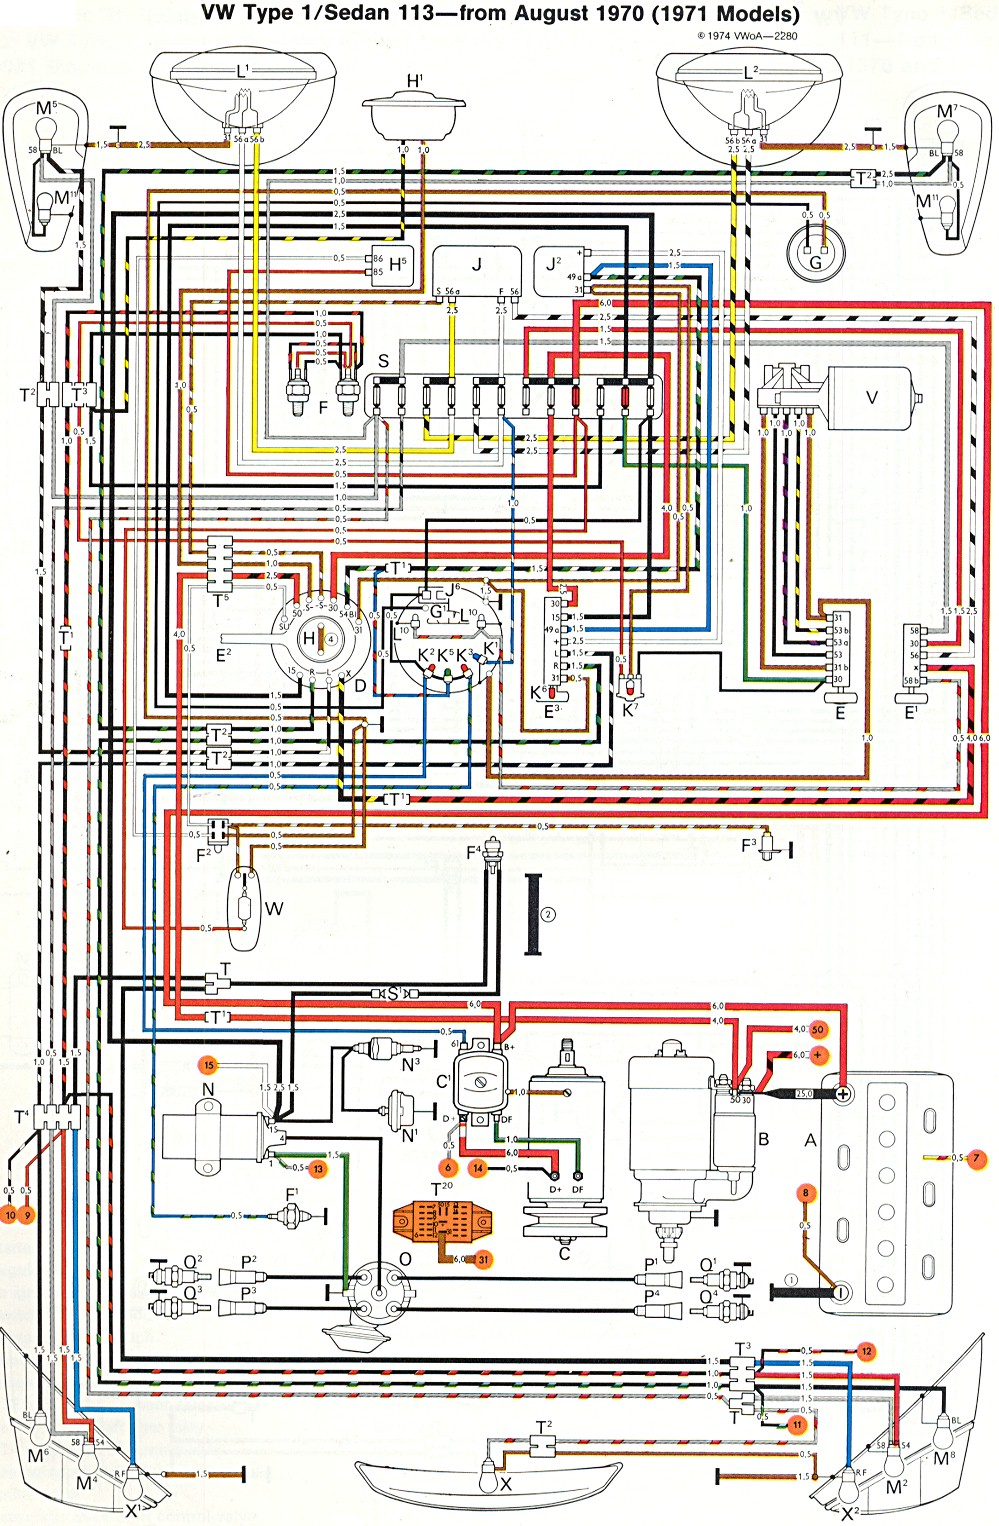 bug_super_71 1971 super beetle wiring diagram thegoldenbug com vw wiring diagrams at webbmarketing.co